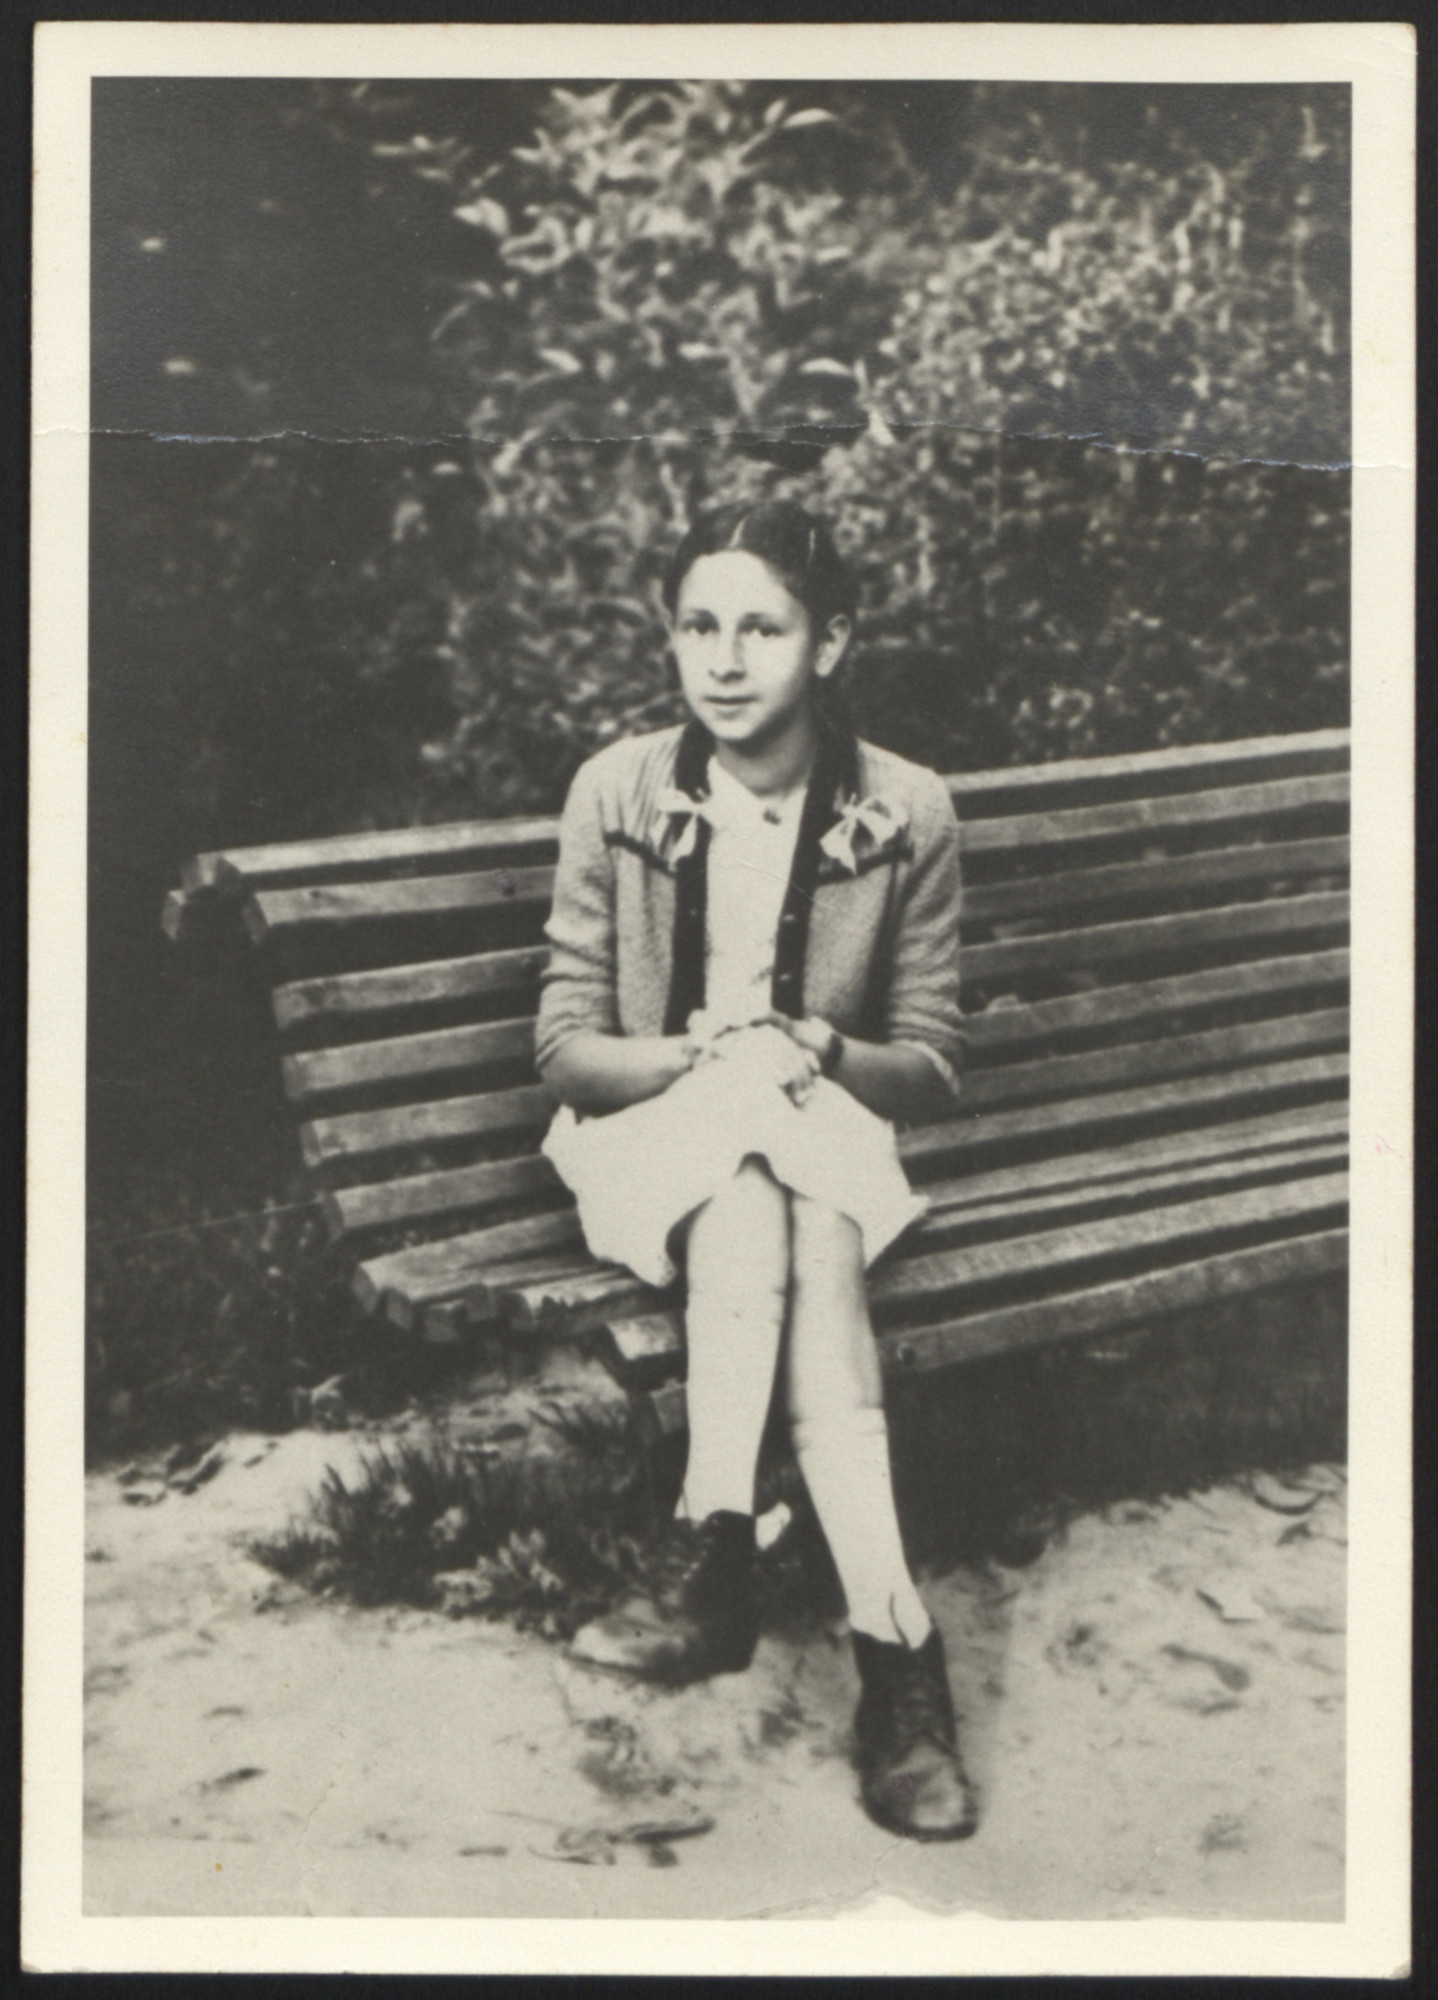 Portrait of Dawid Tennenbaum sitting on a park bench while living in hiding disguised as a girl.